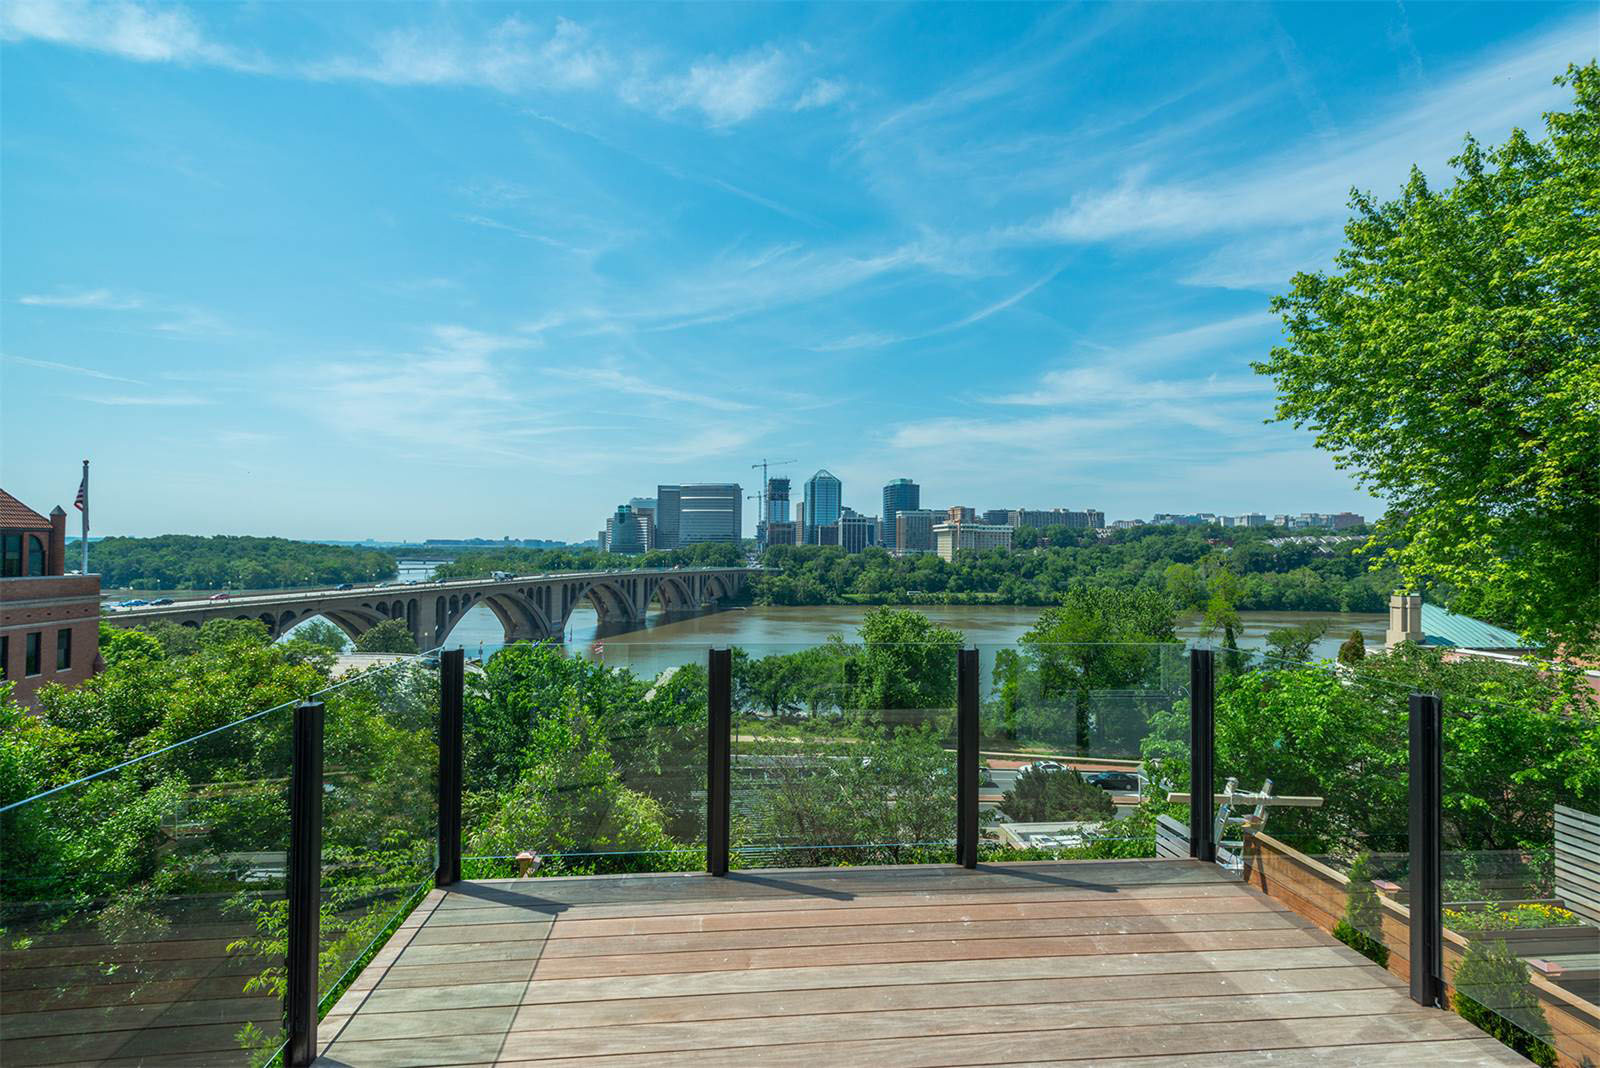 Townhouse Terrace with views of The Potomac River